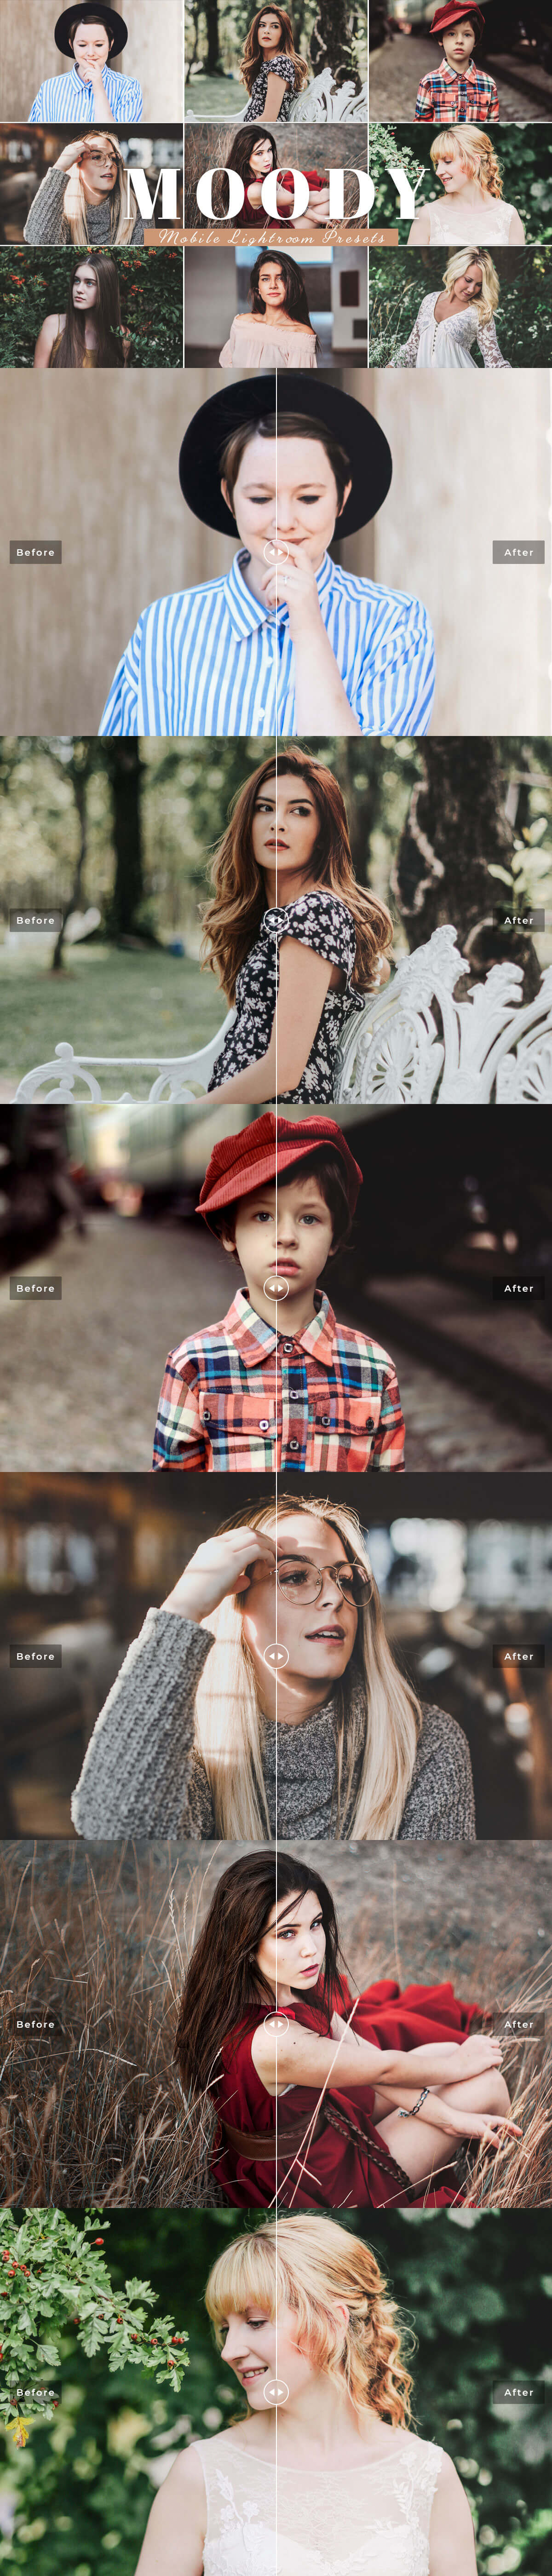 Free #Moody#Mobile Lightroom #Presetwill help you create moody look effects and enhance features, to create beautiful edits in your portraits with just in one click.